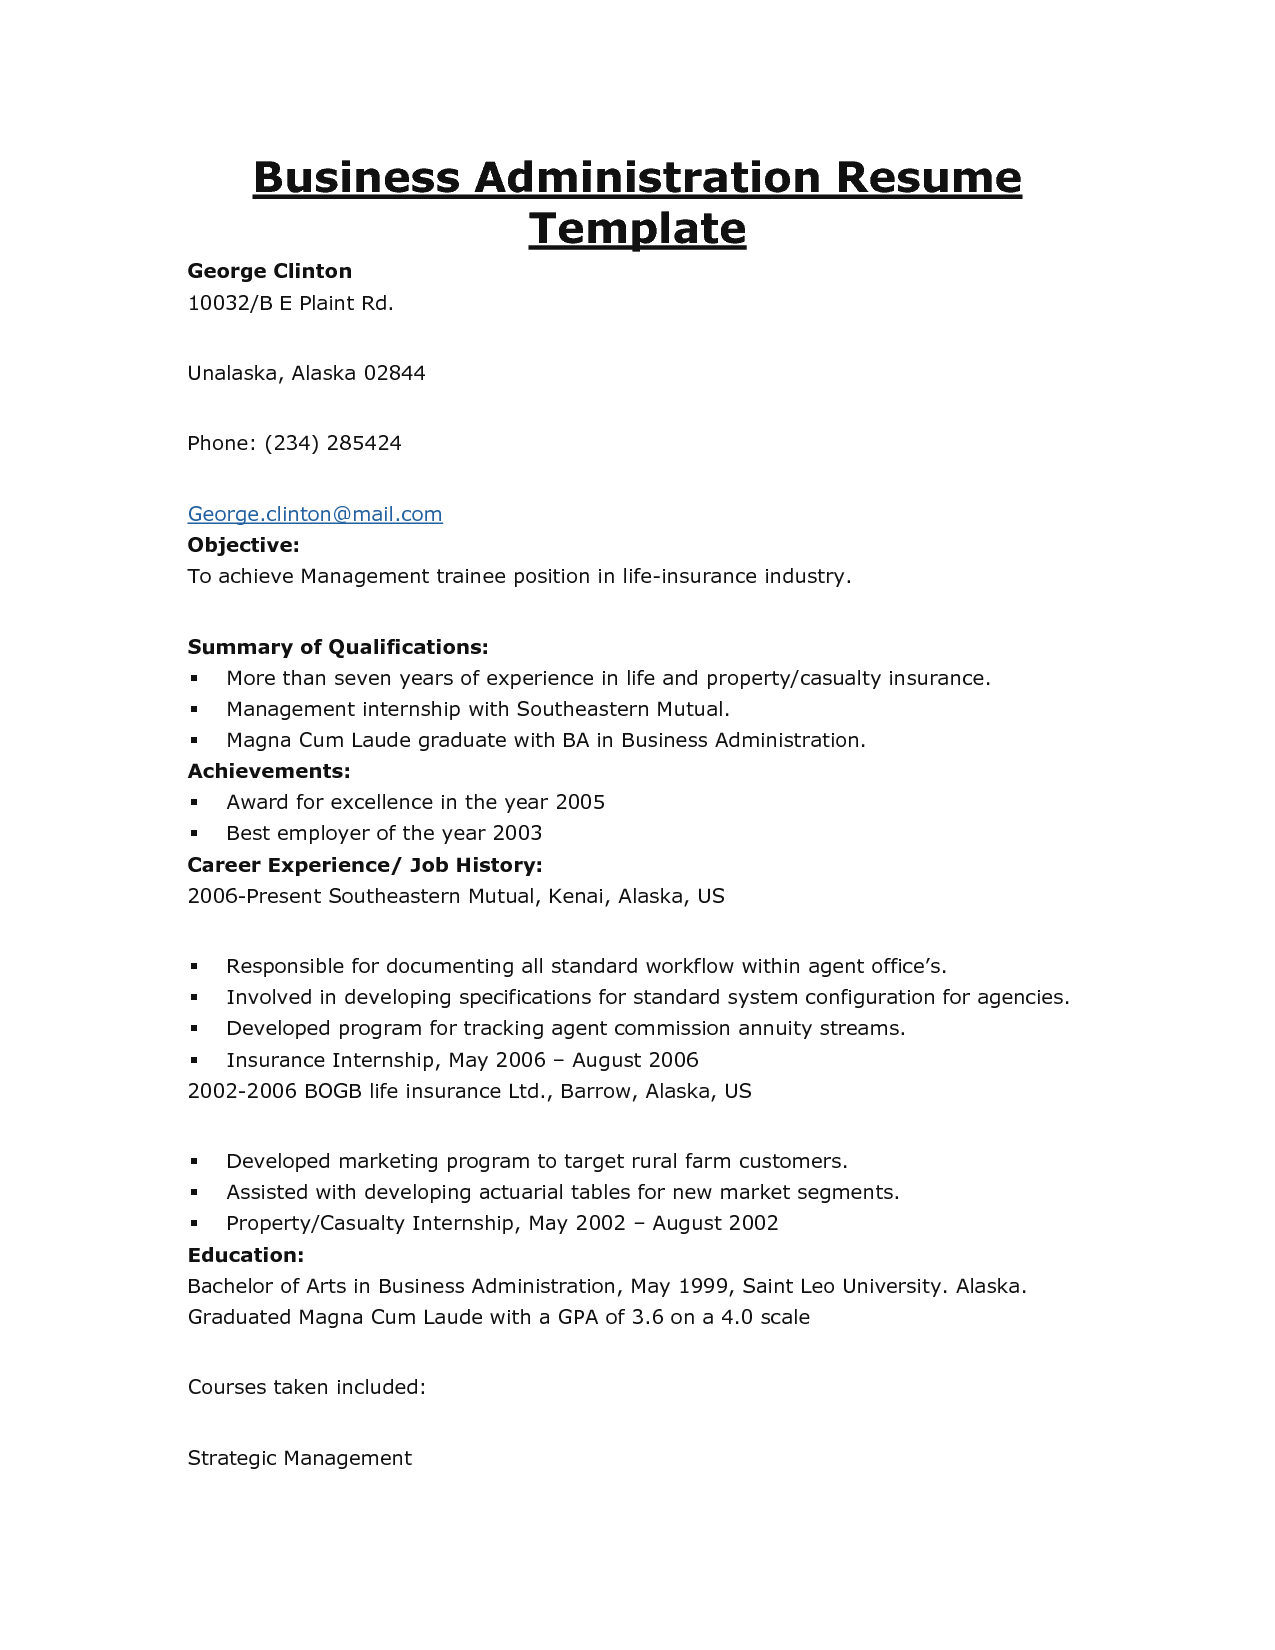 Business Management Resume Samples Alluring Resume Examples Business Management #business #examples #management .